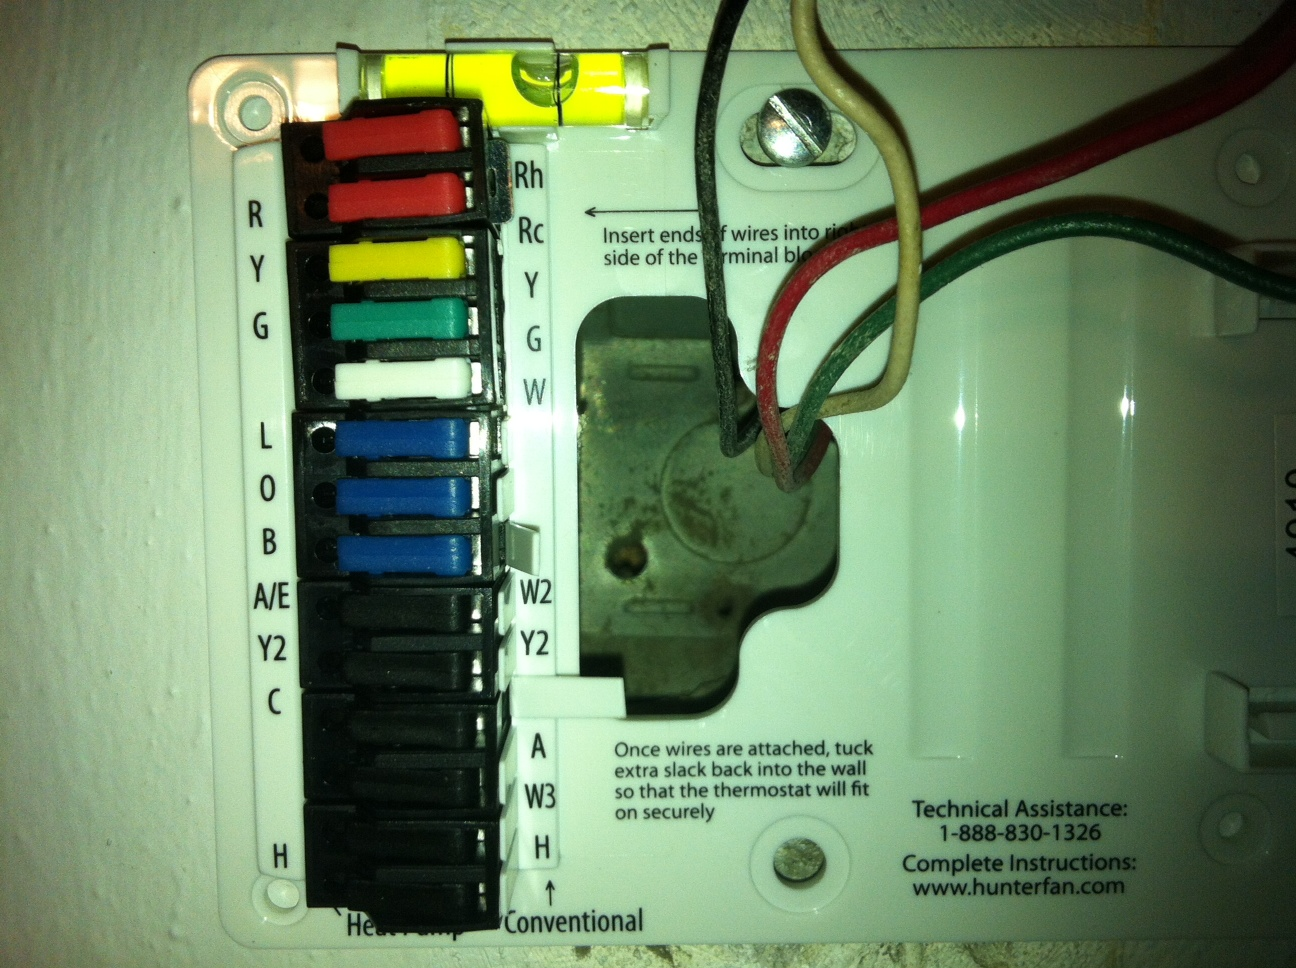 Wiring diagram hunter thermostat map of nb canada wiring a thermostat tech support forum attachment wiring a thermostat 609689html wiring diagram hunter thermostat wiring diagram hunter thermostat cheapraybanclubmaster Choice Image